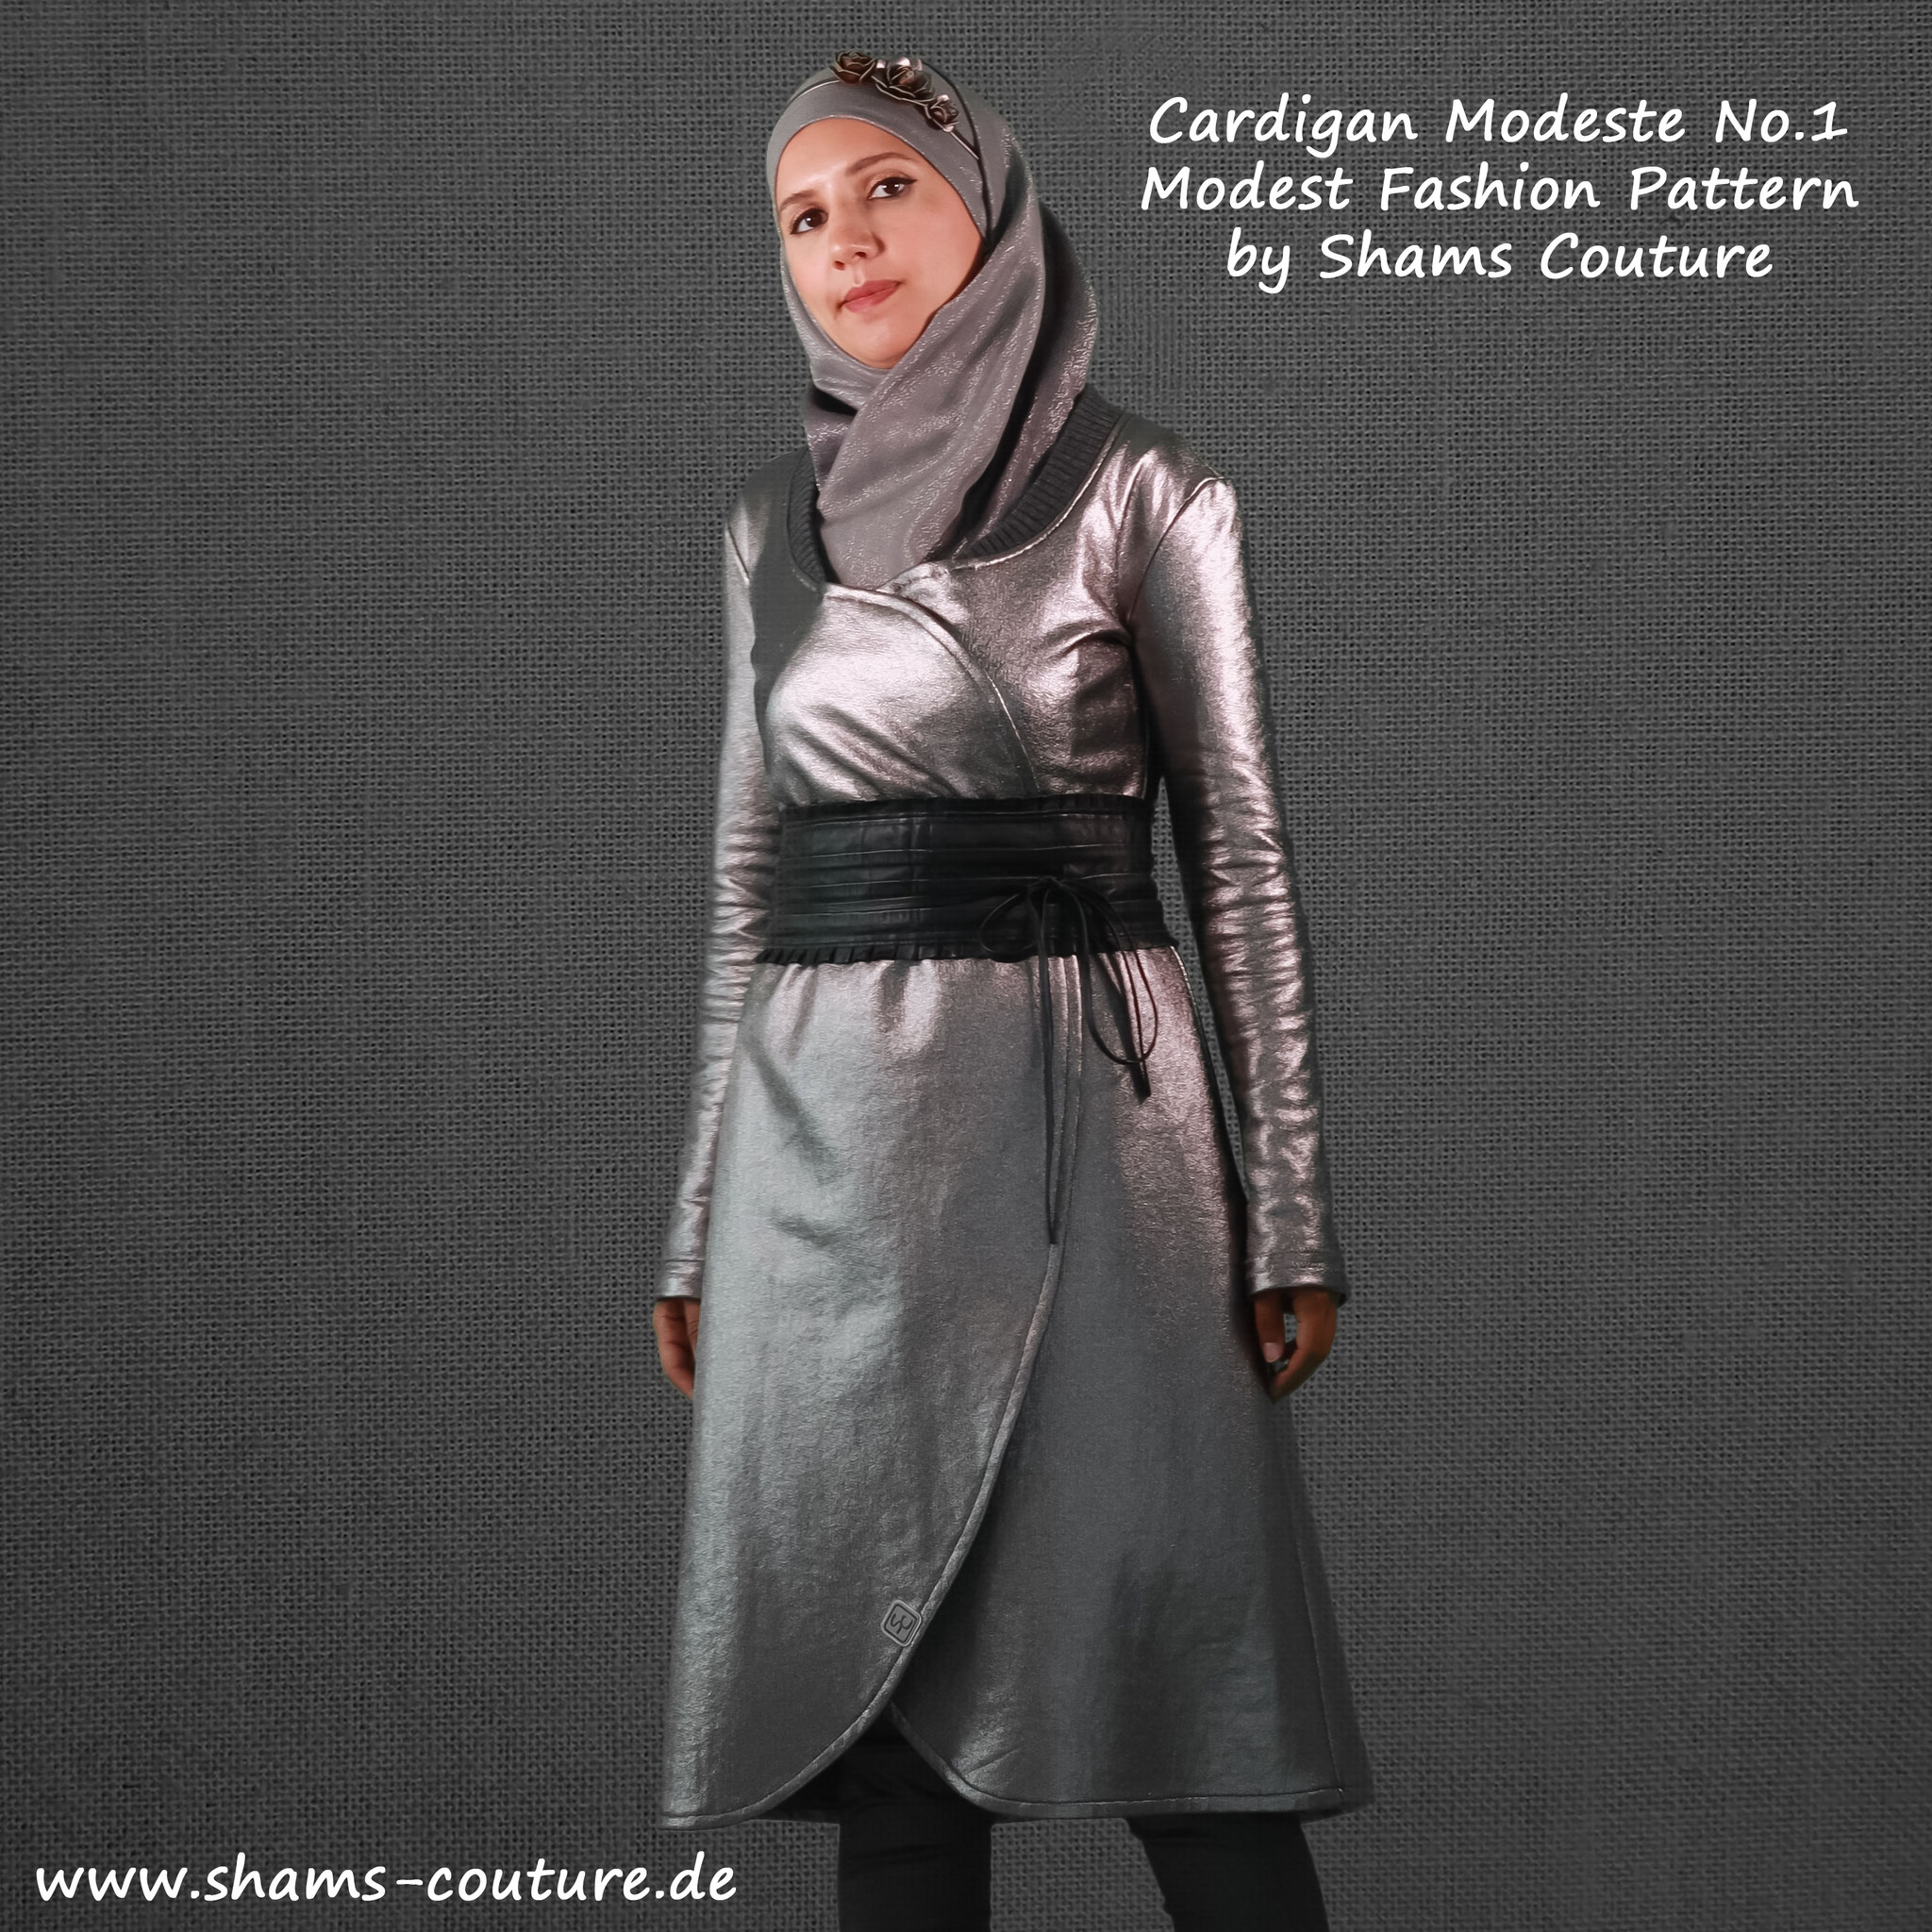 Modest Fashion Schnittmuster - Cardigan Modeste No.1